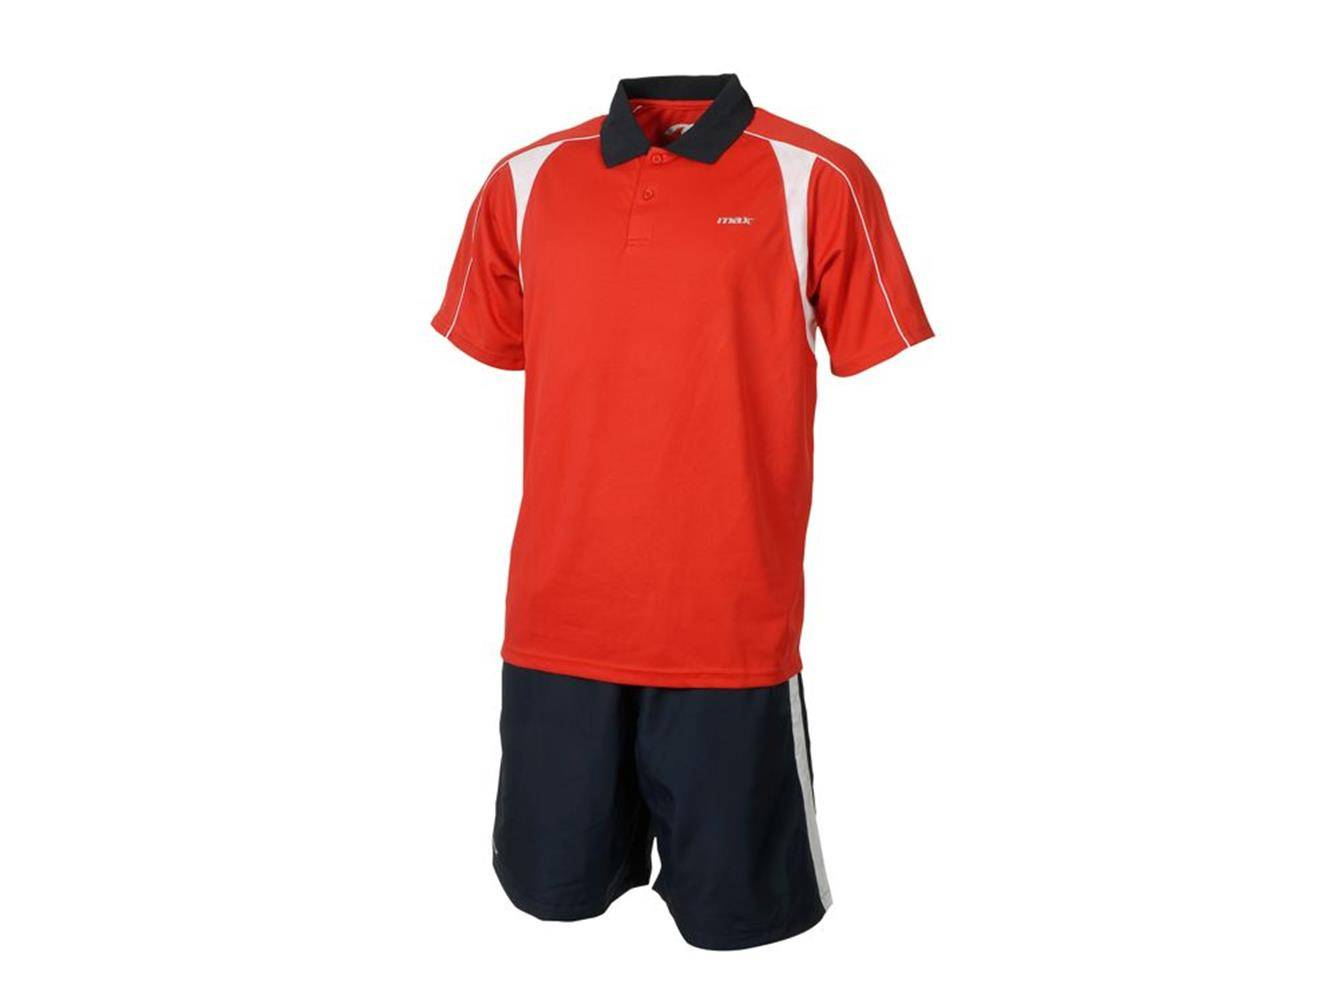 Max Completo Tennis - Kit Max Free Time Panama